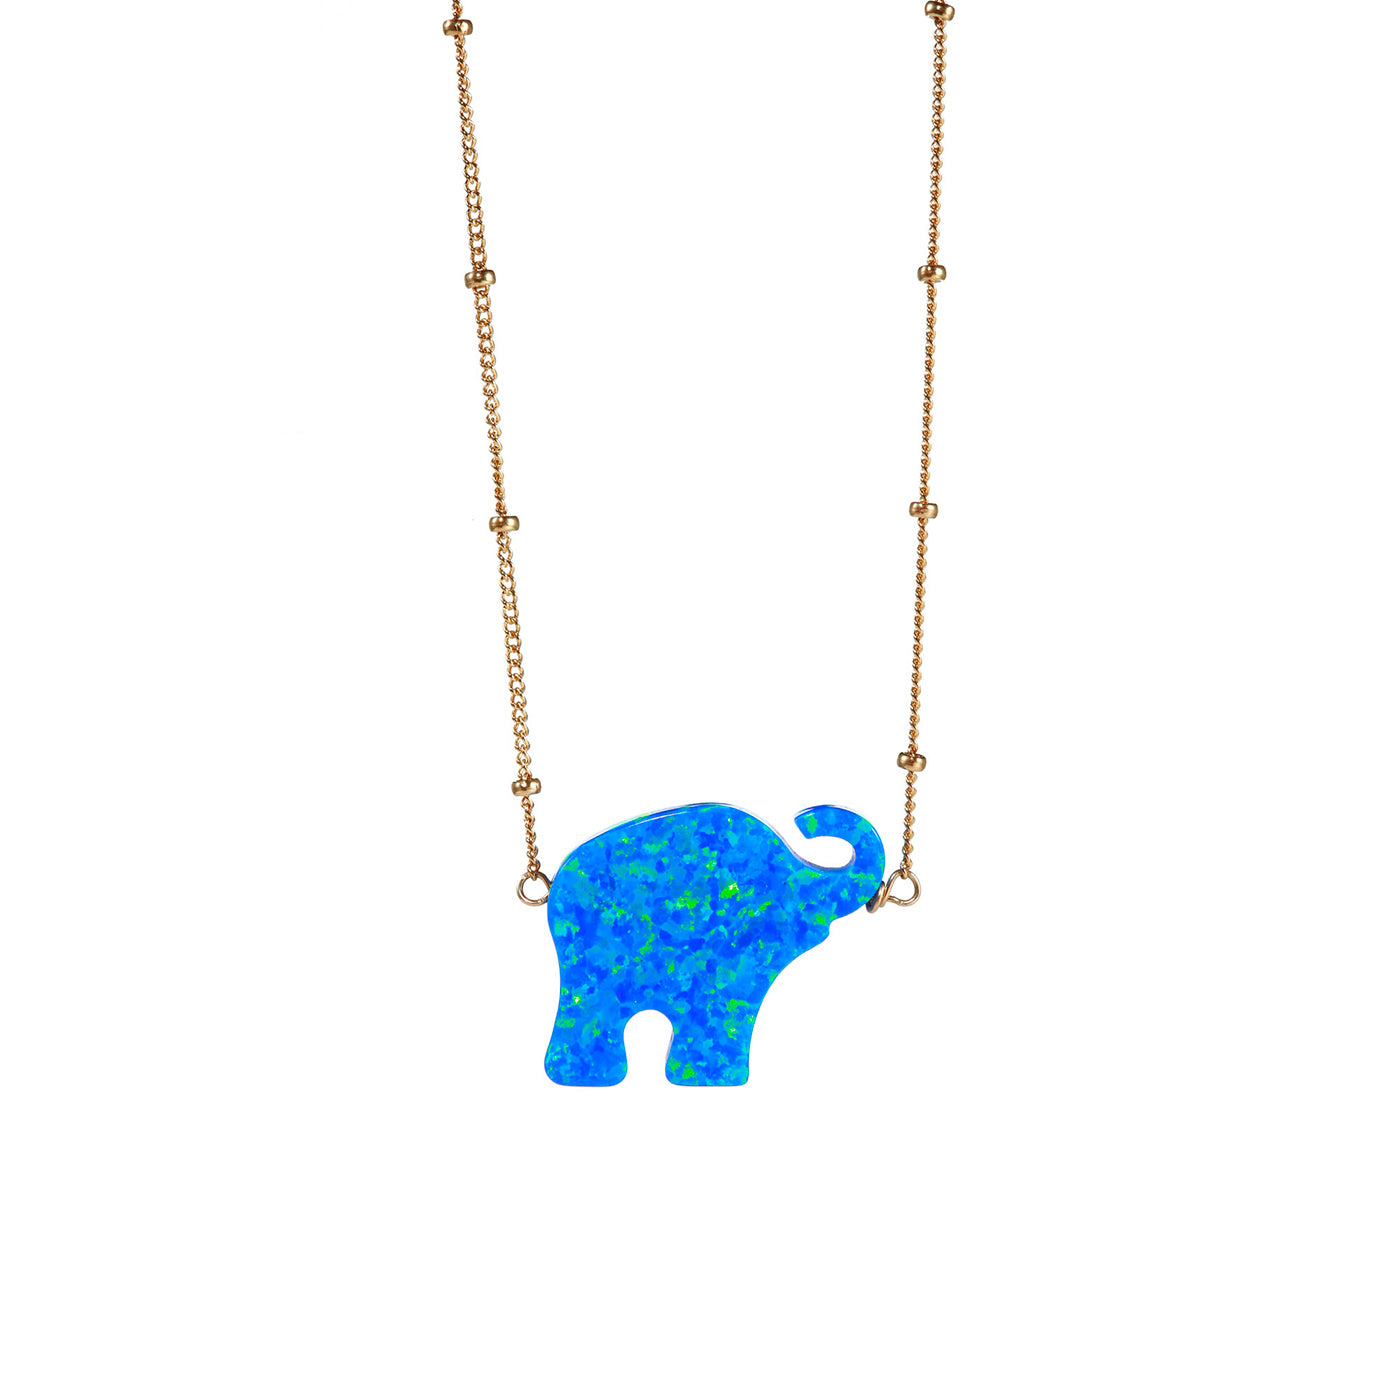 outline bk by baby jio jewellery dsc craft large elephant modern hand necklace